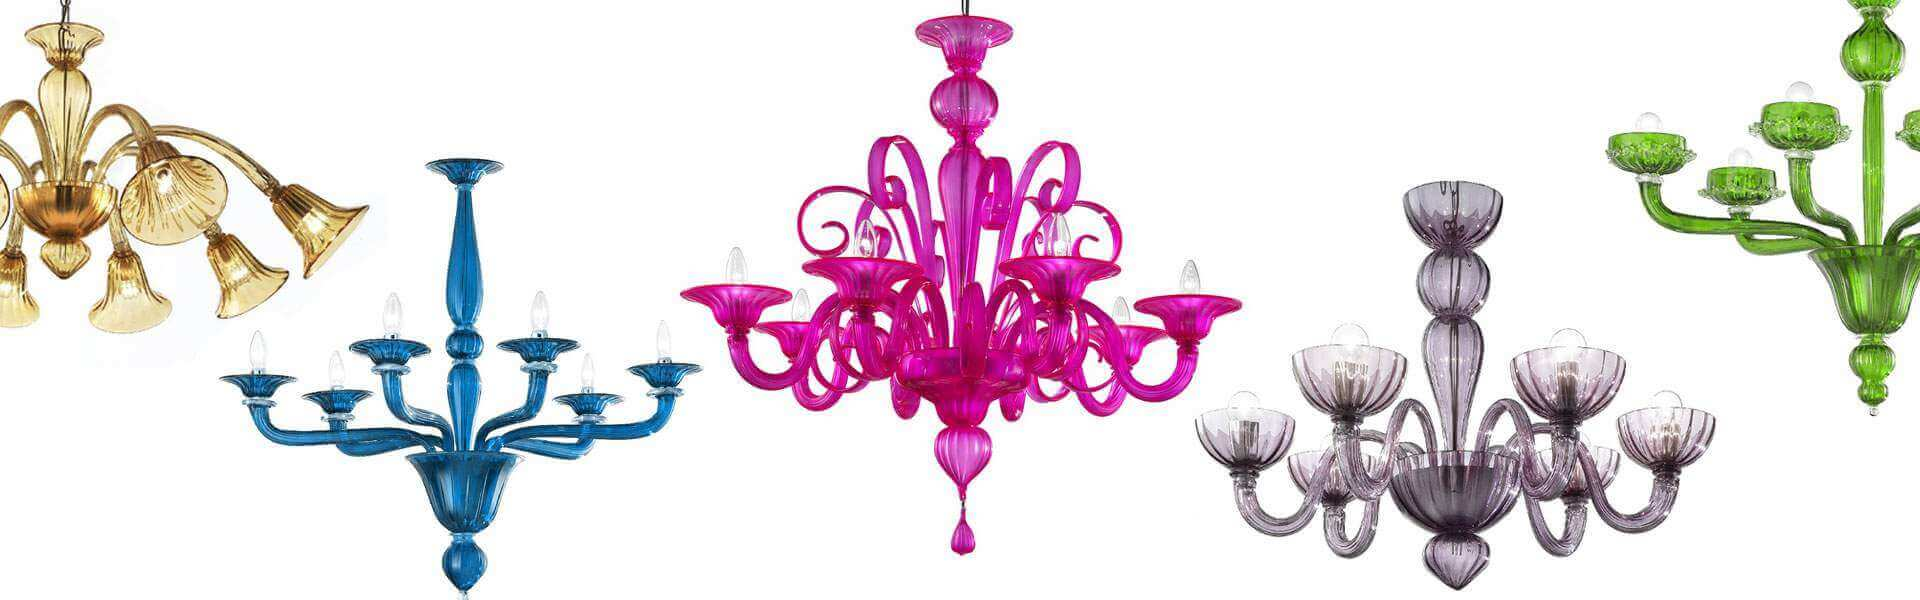 murano chandeliers murano glass chandeliers for sale from italy aloadofball Images